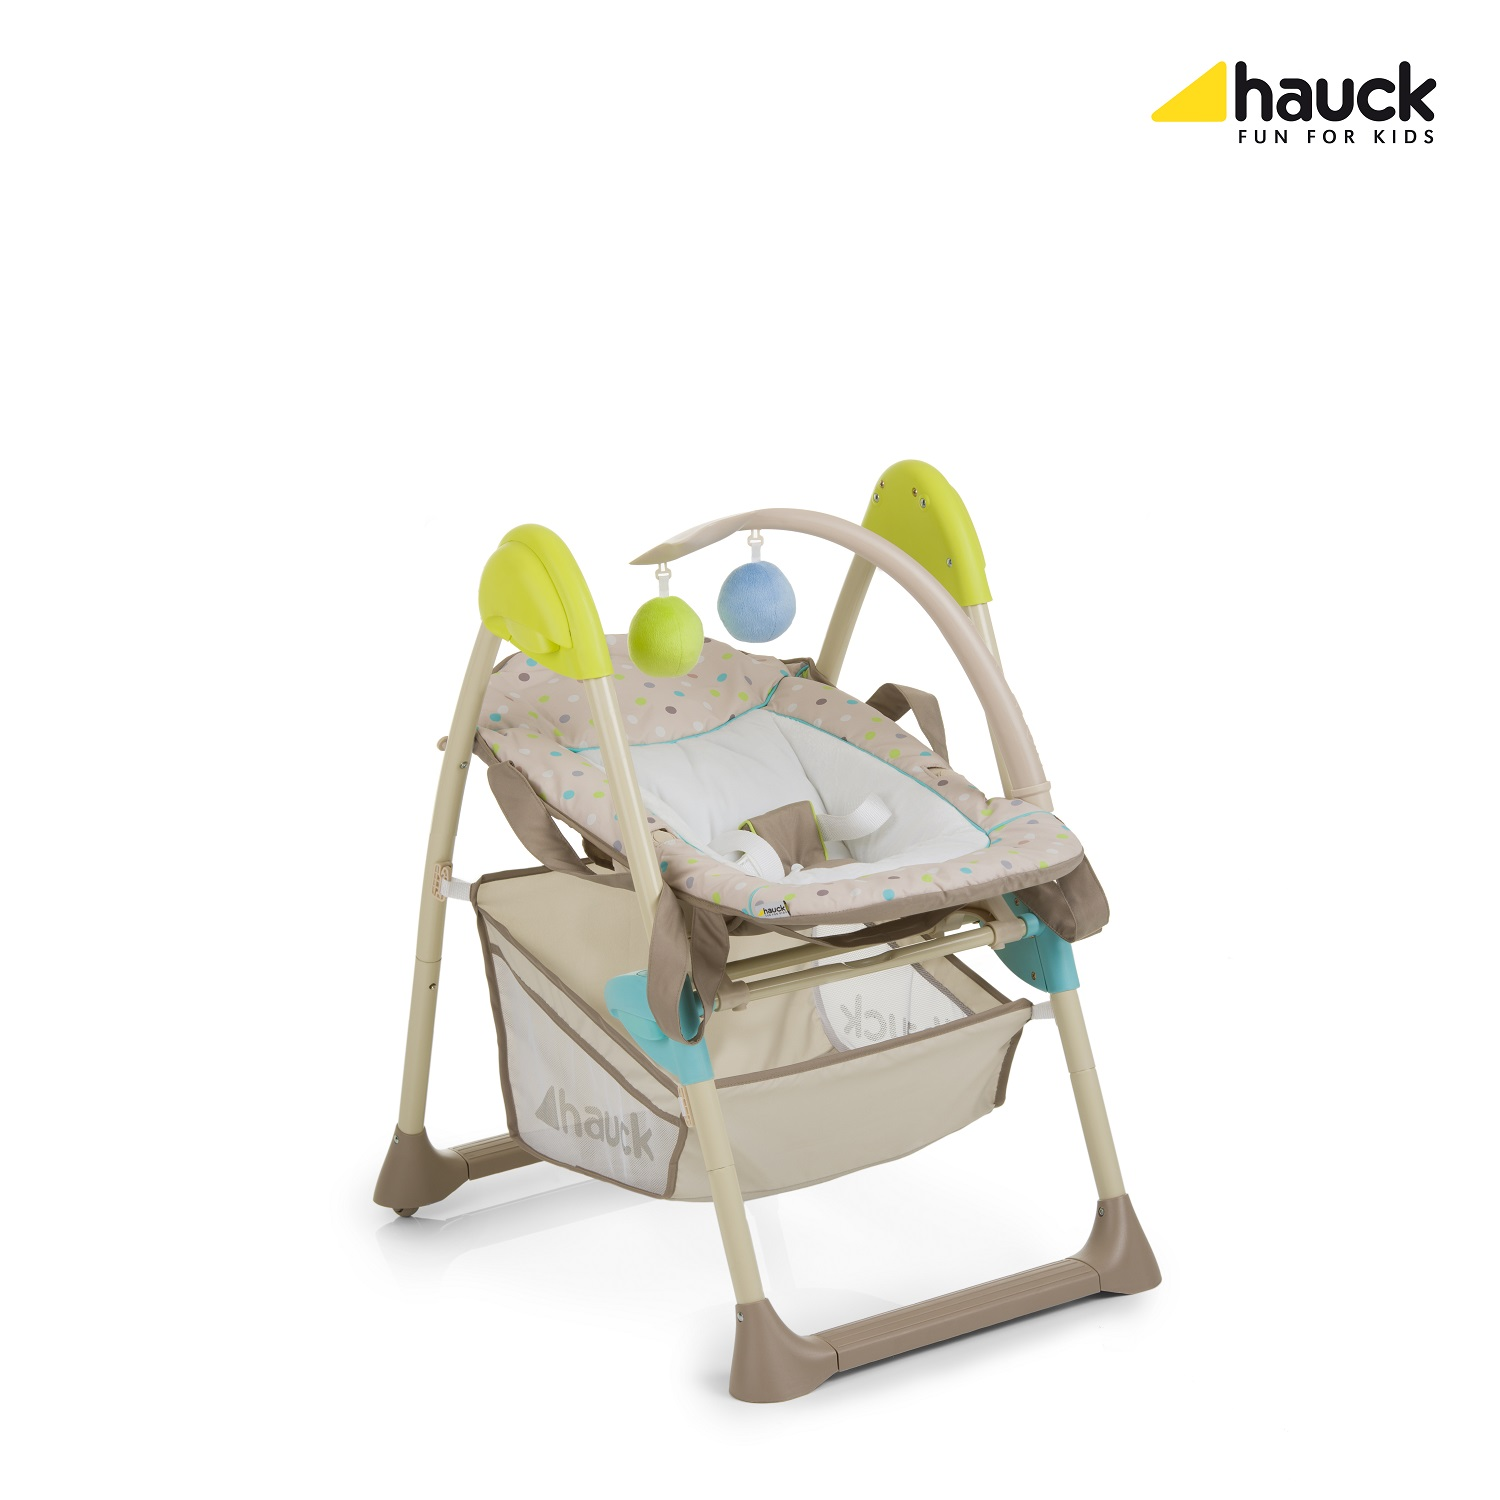 hauck highchair sit n relax buy at kidsroom living. Black Bedroom Furniture Sets. Home Design Ideas